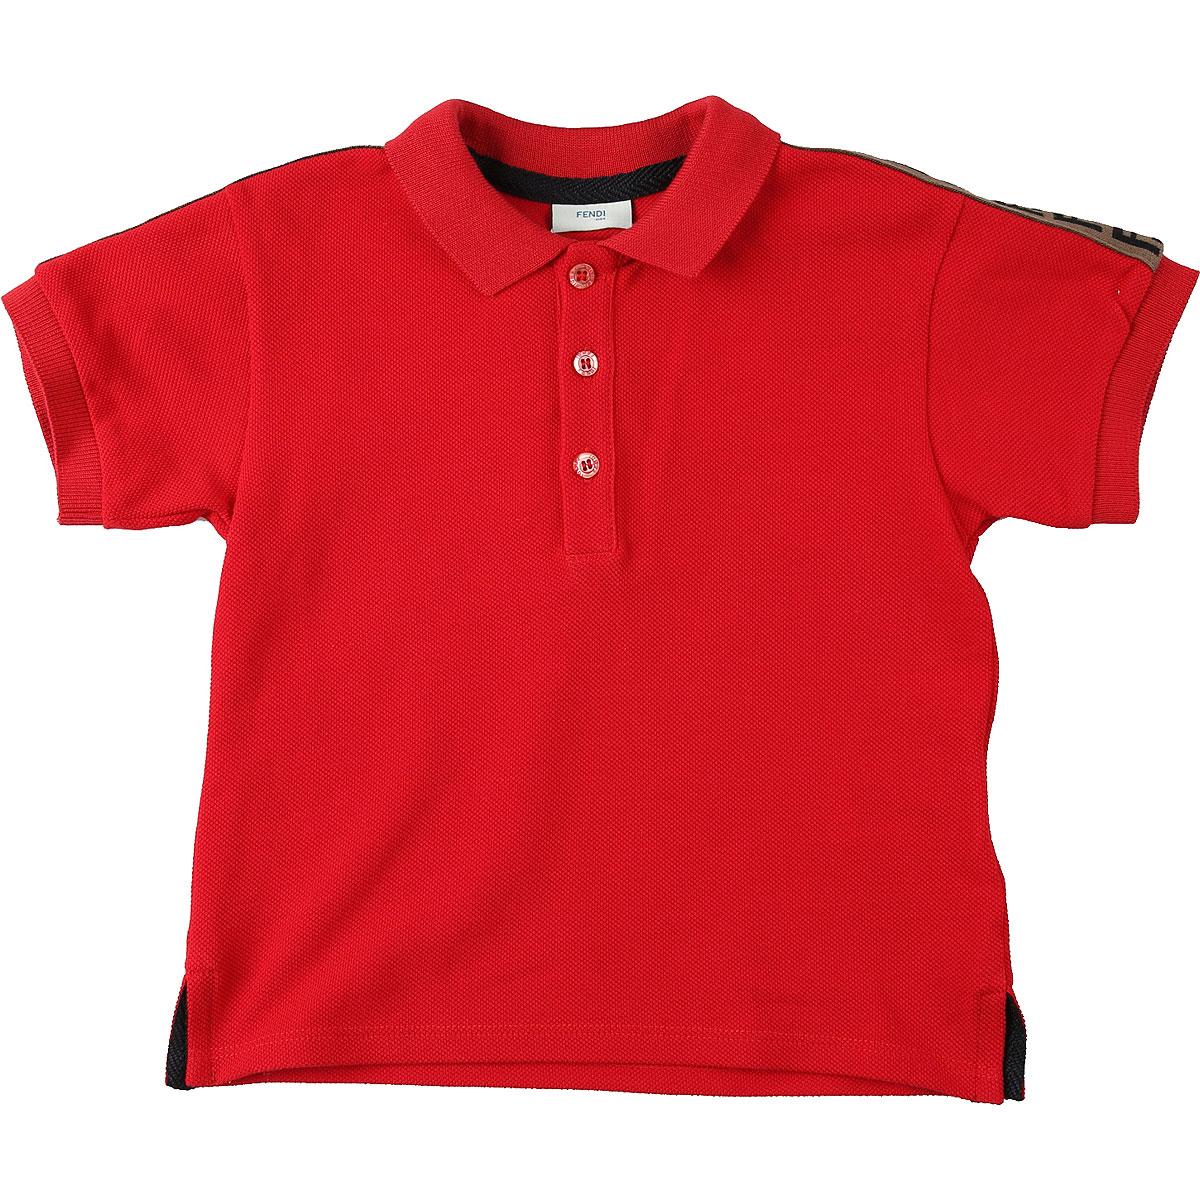 Fendi Baby Polo Shirt for Boys On Sale, Red, Cotton, 2019, 12 M 18M 2Y